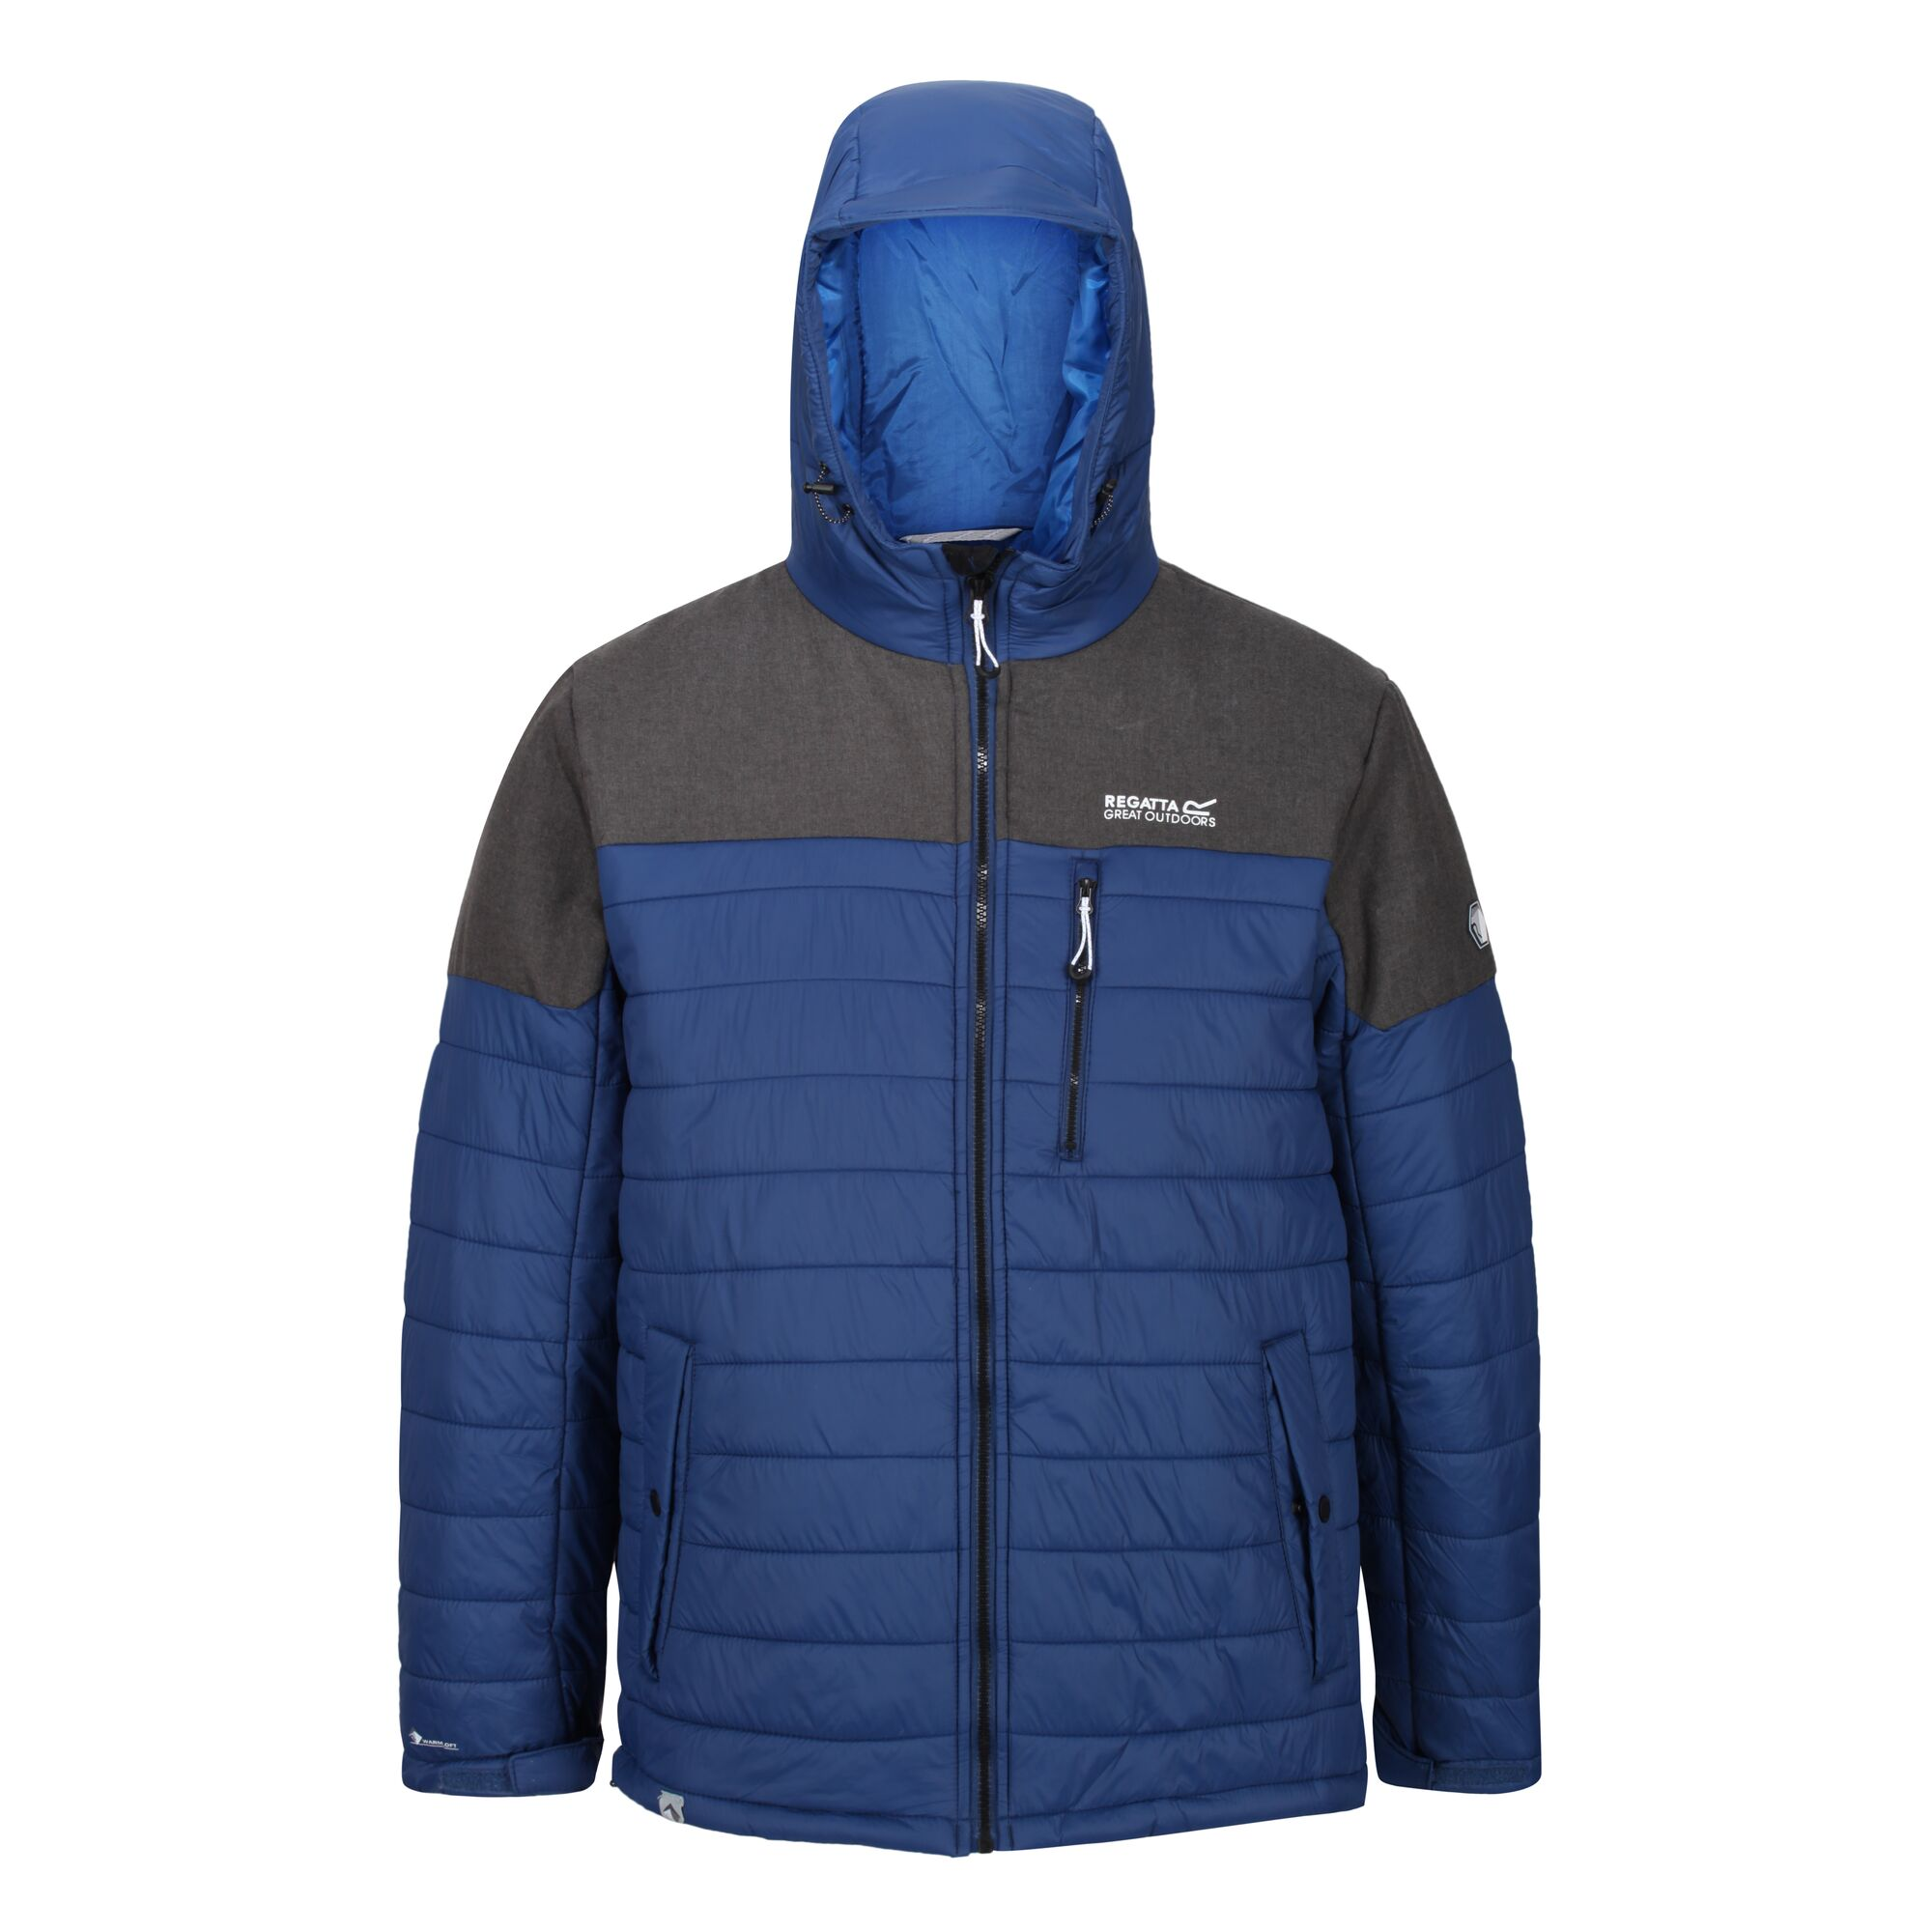 Men's blue and grey hooded thick jacket